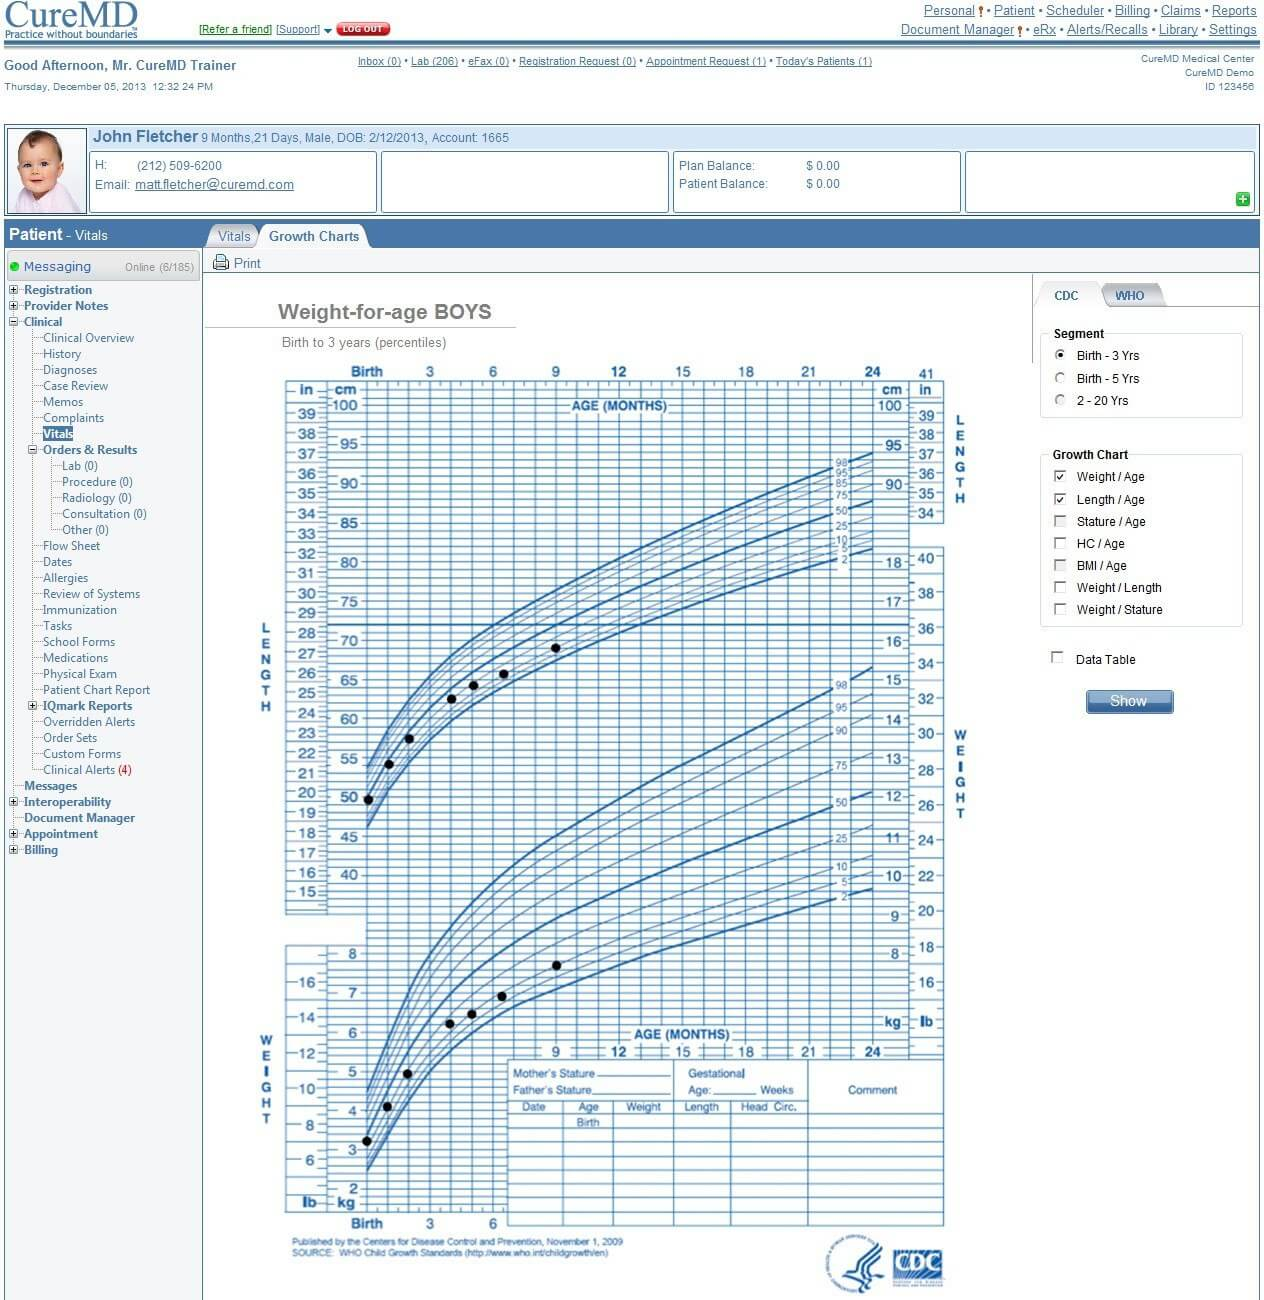 CureMD Practice Management & Electronic Health Records